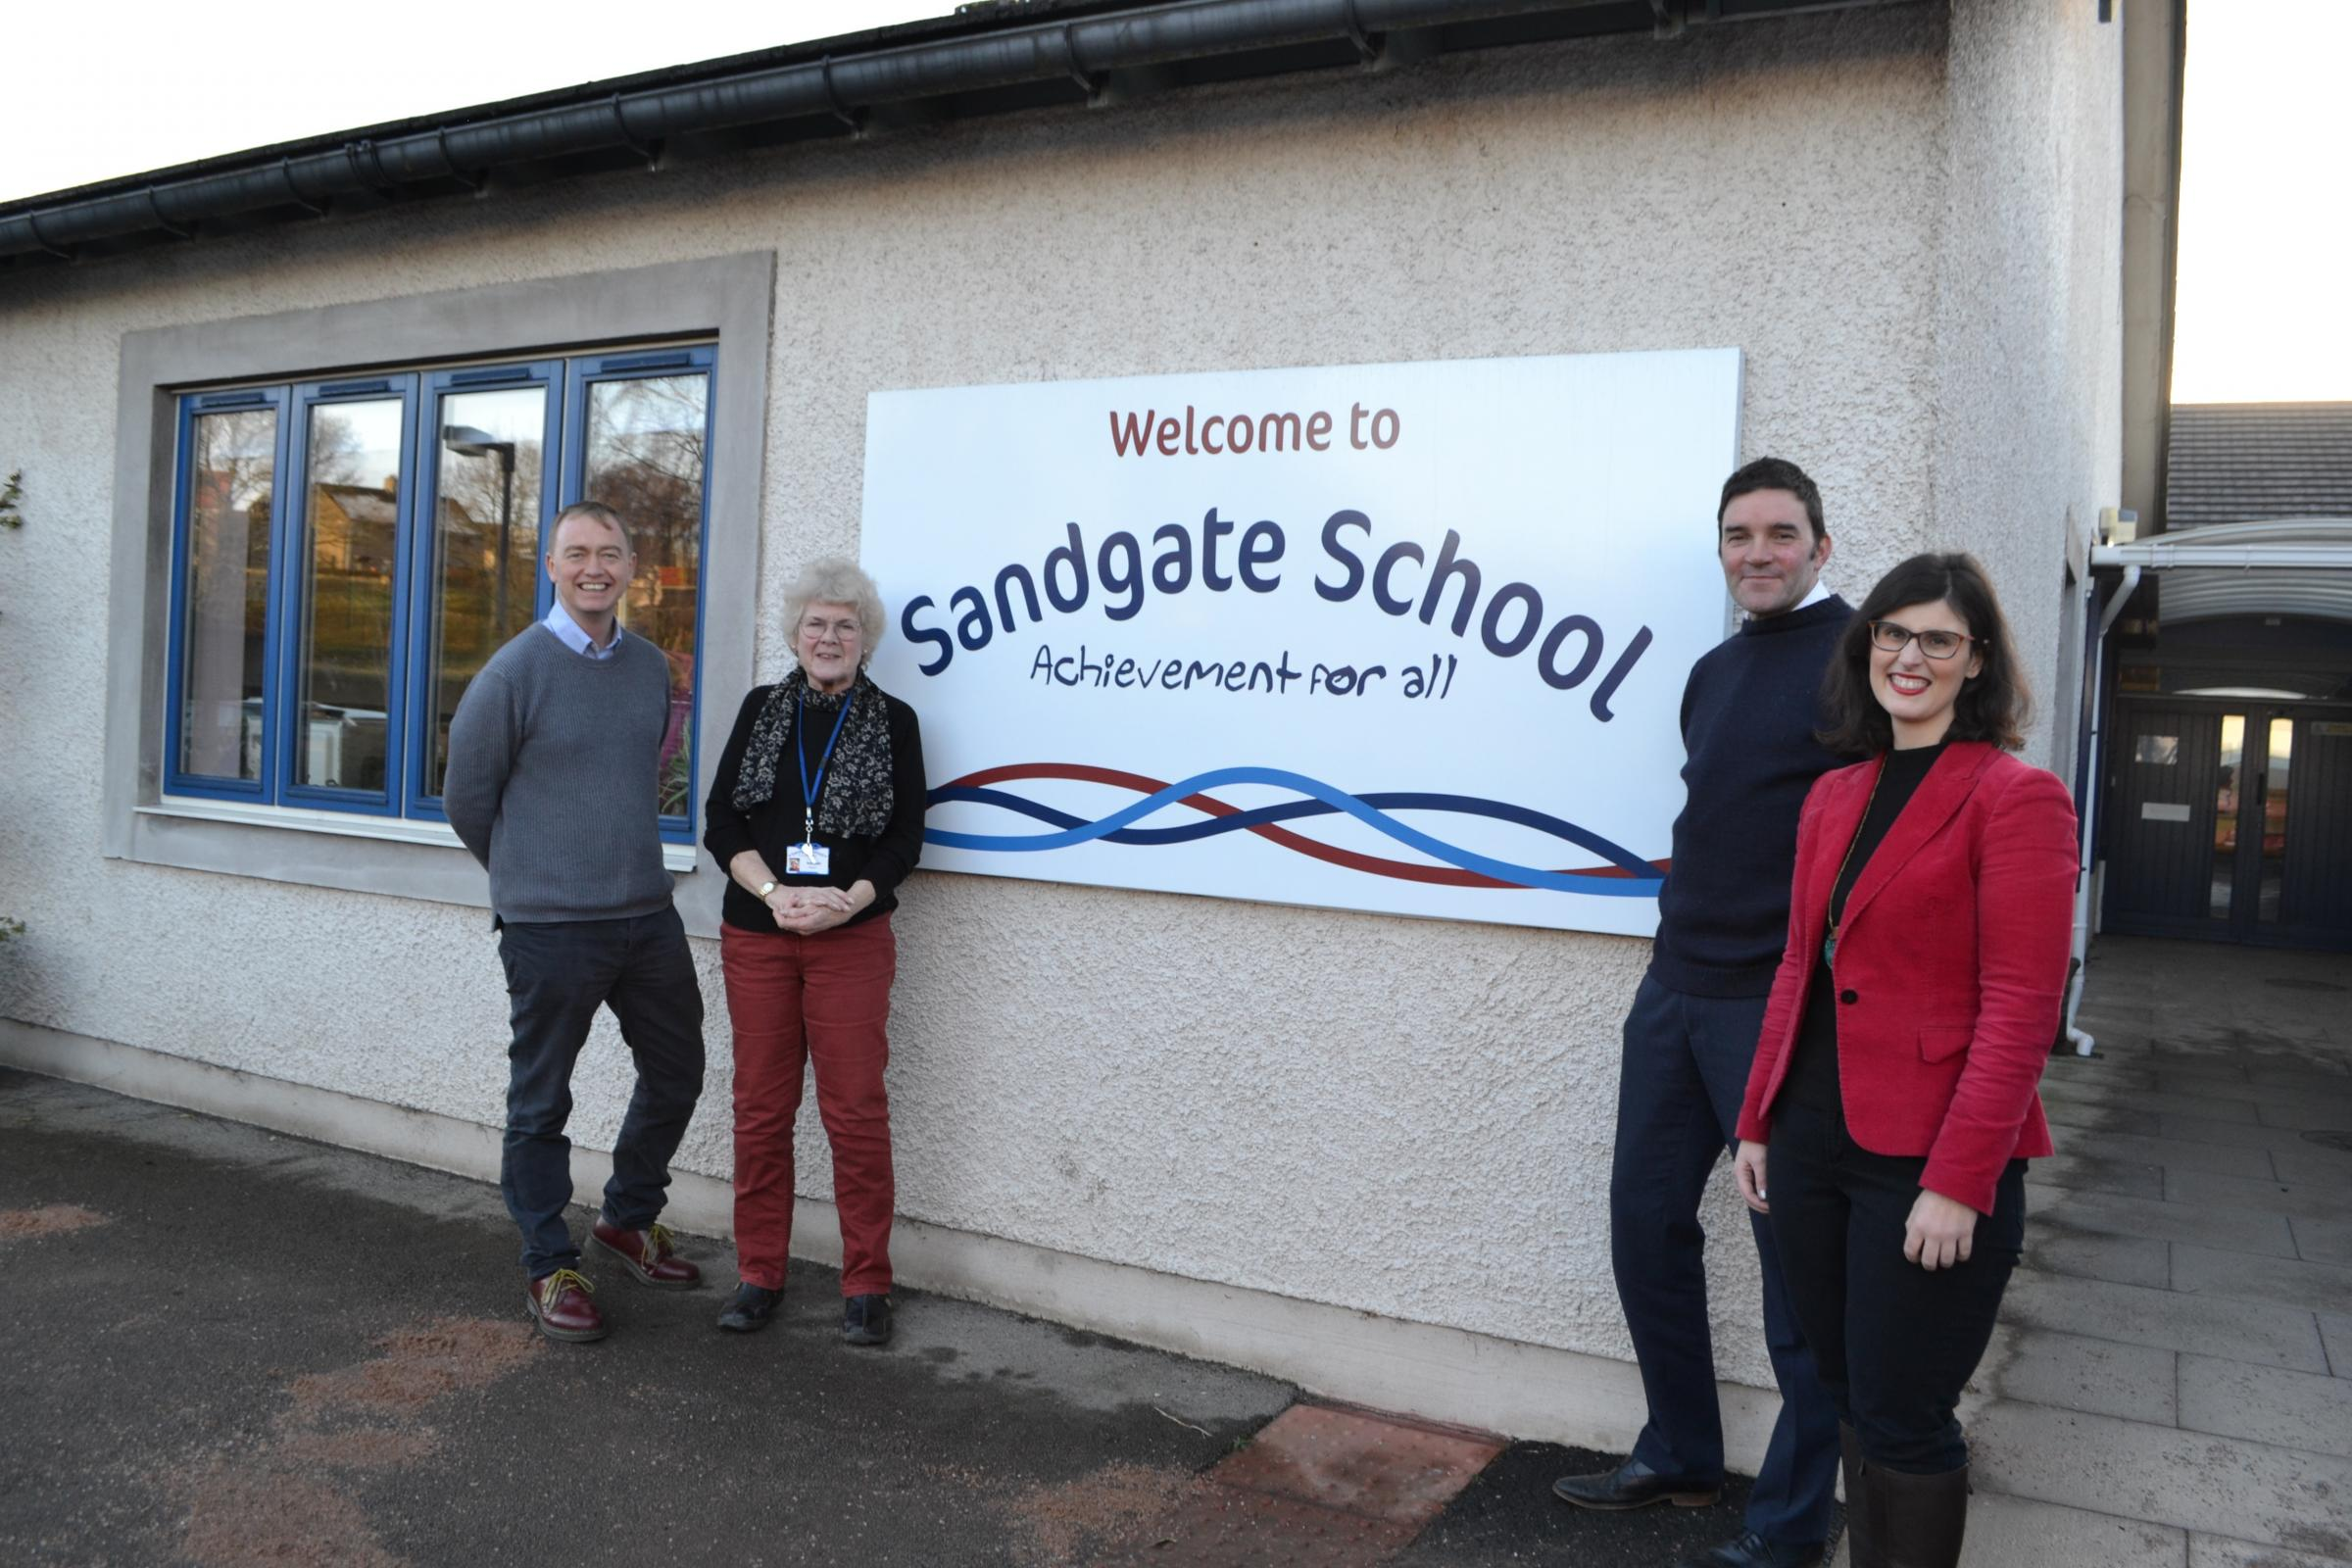 Pictured during the Sandgate School visit are, from left, MP Tim Farron MP, the school's chair of governors Ruth Cutler, head teacher Dan Hinton and Layla Moran MP